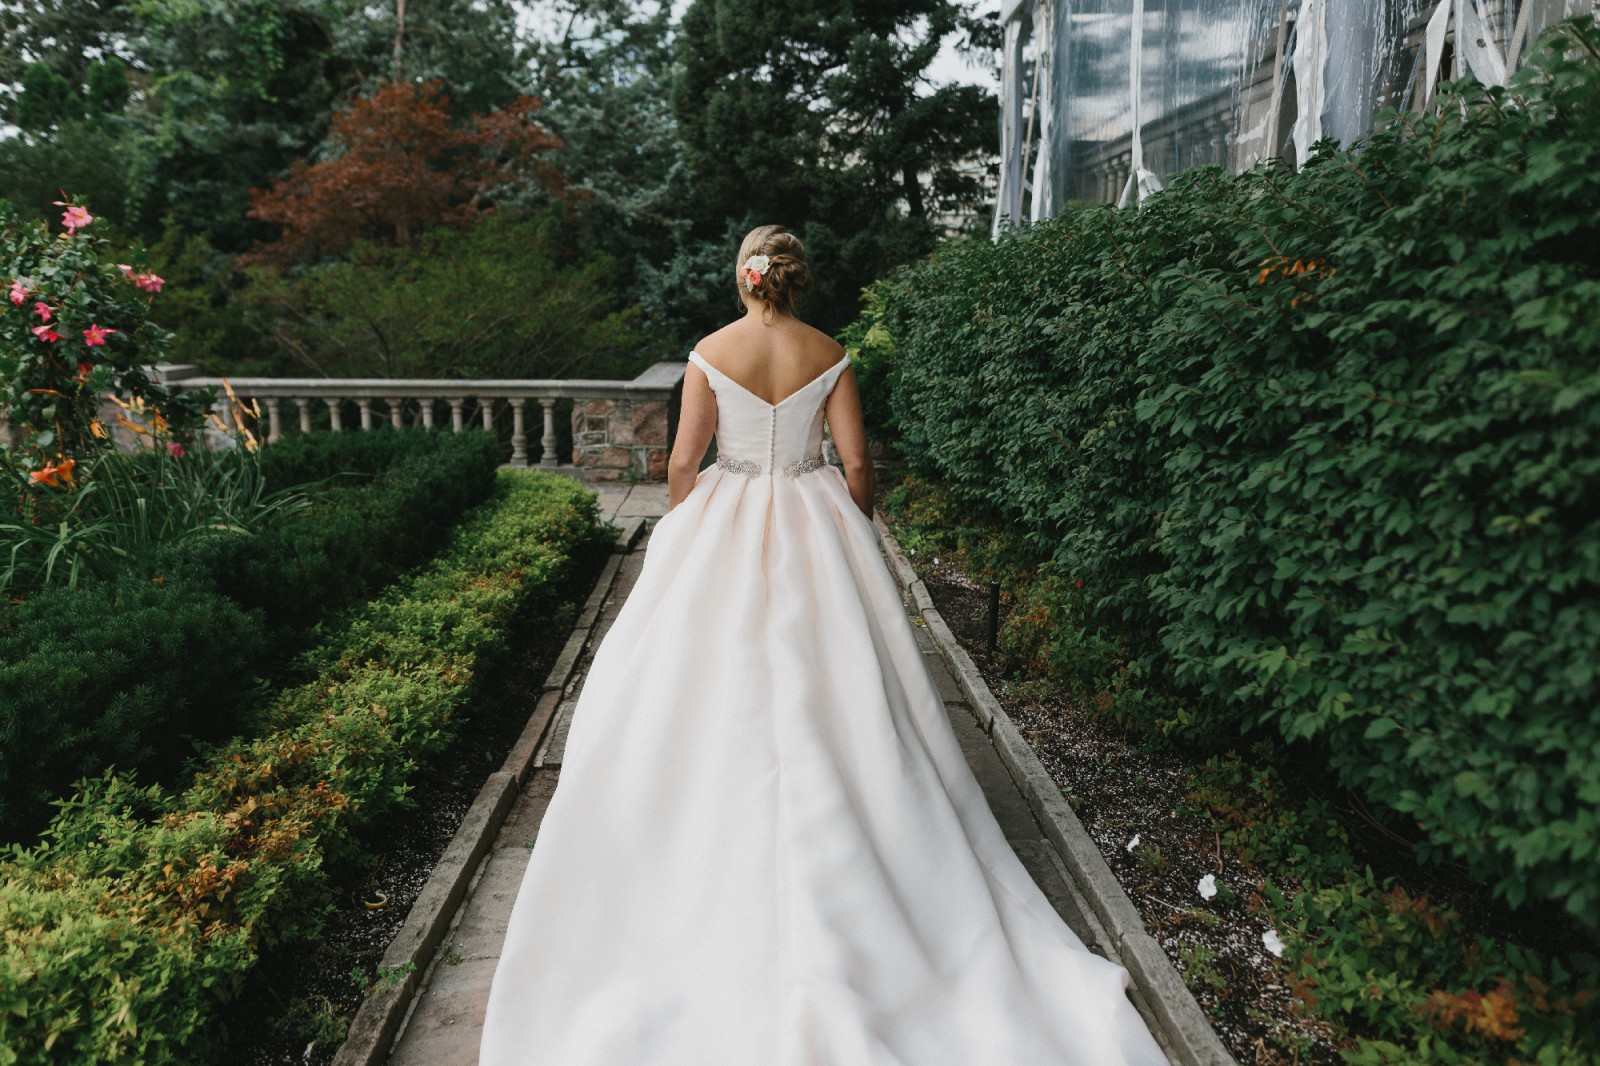 Cheap Wedding Gowns Toronto: Used Wedding Dresses